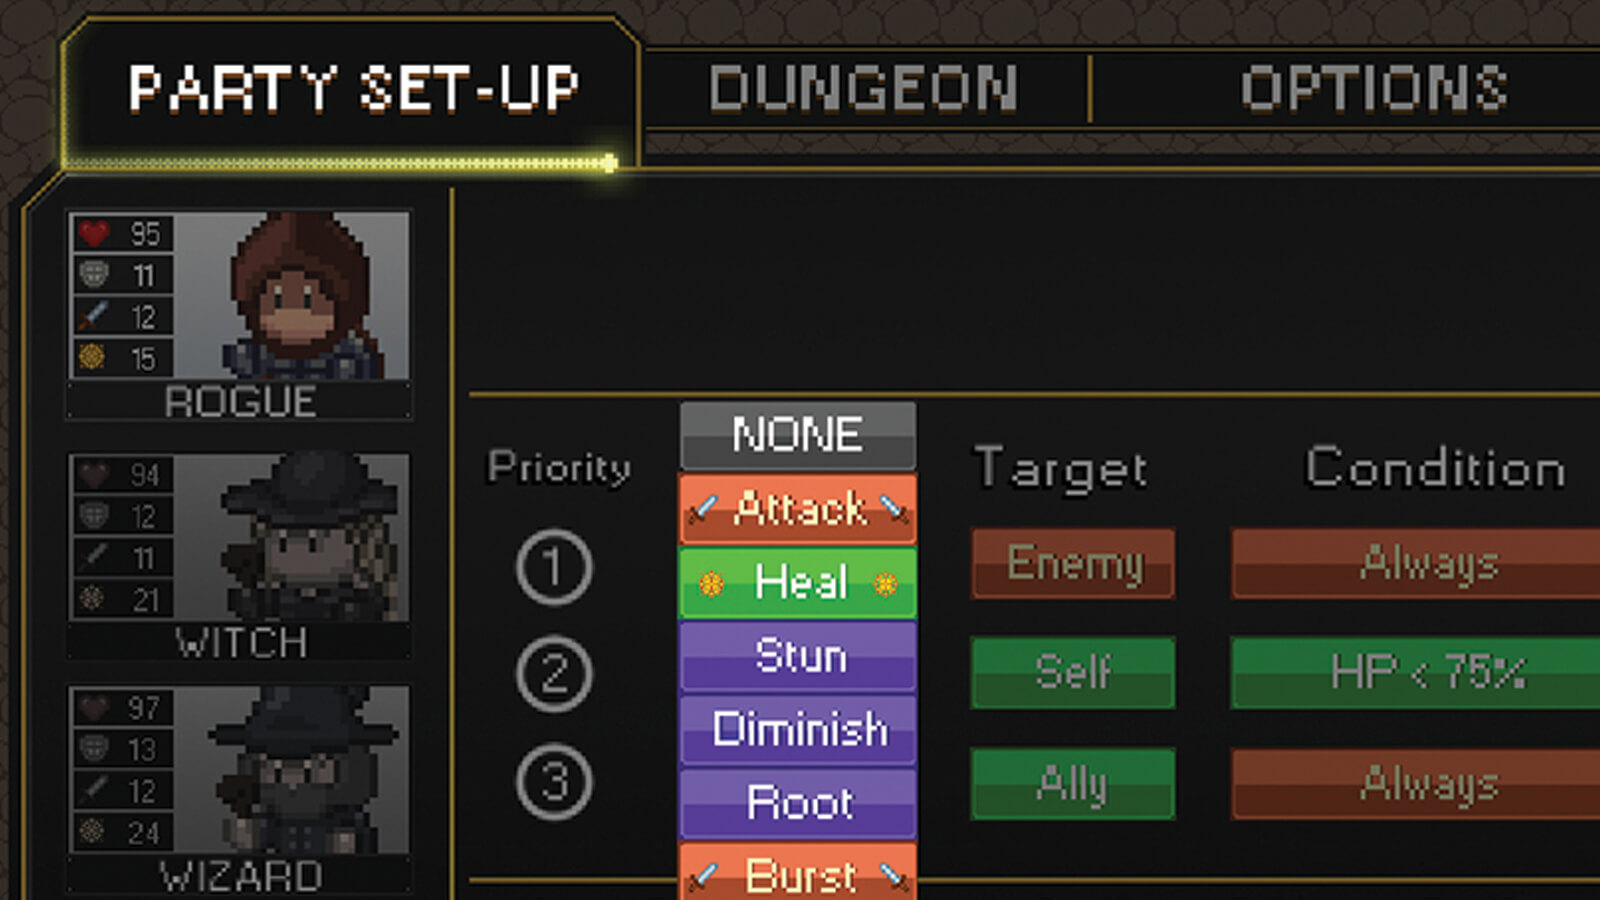 The party set-up screen indicating what actions the character will prioritize while in battle